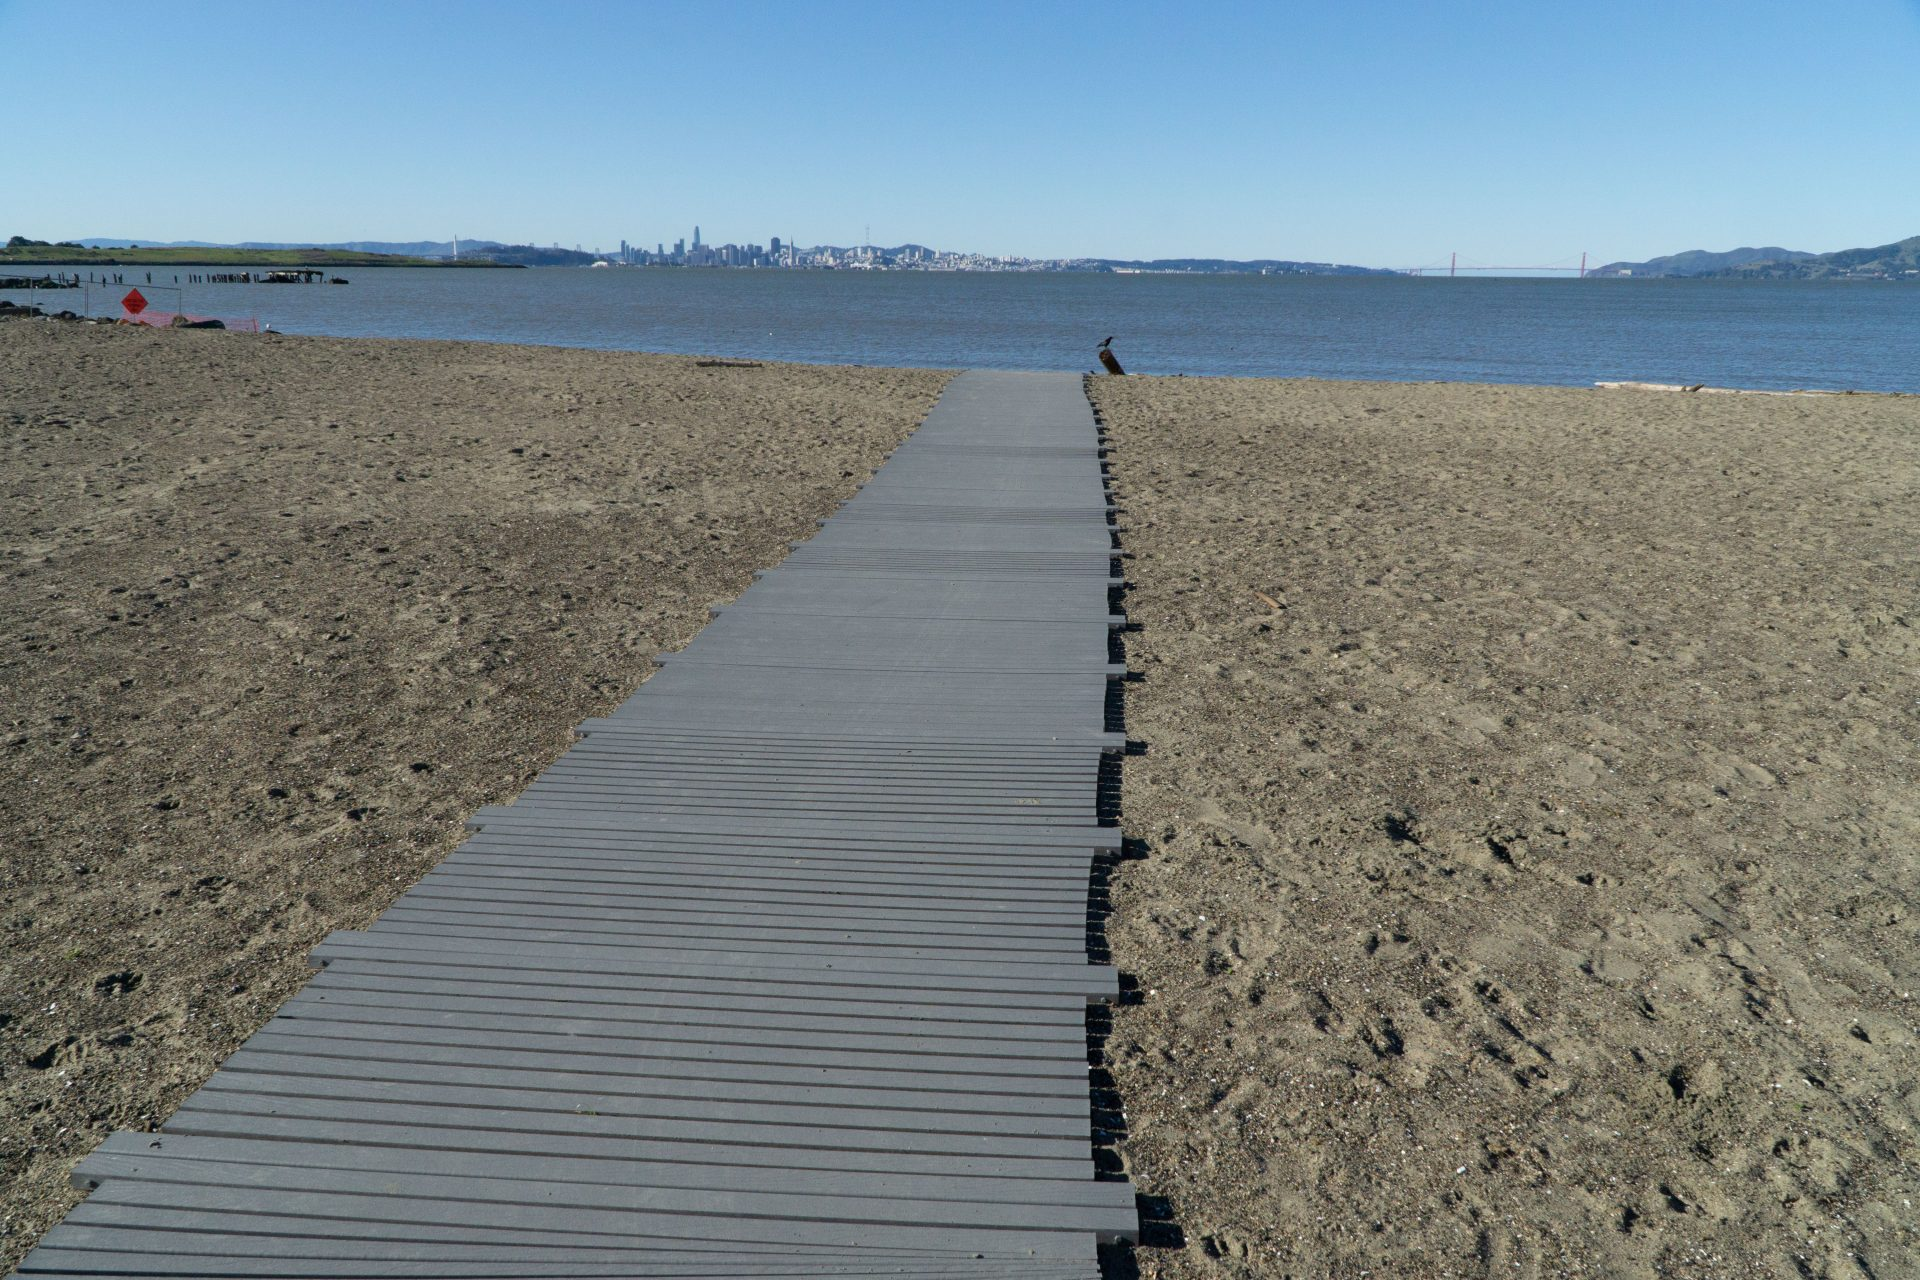 long gangway leading over sand to water